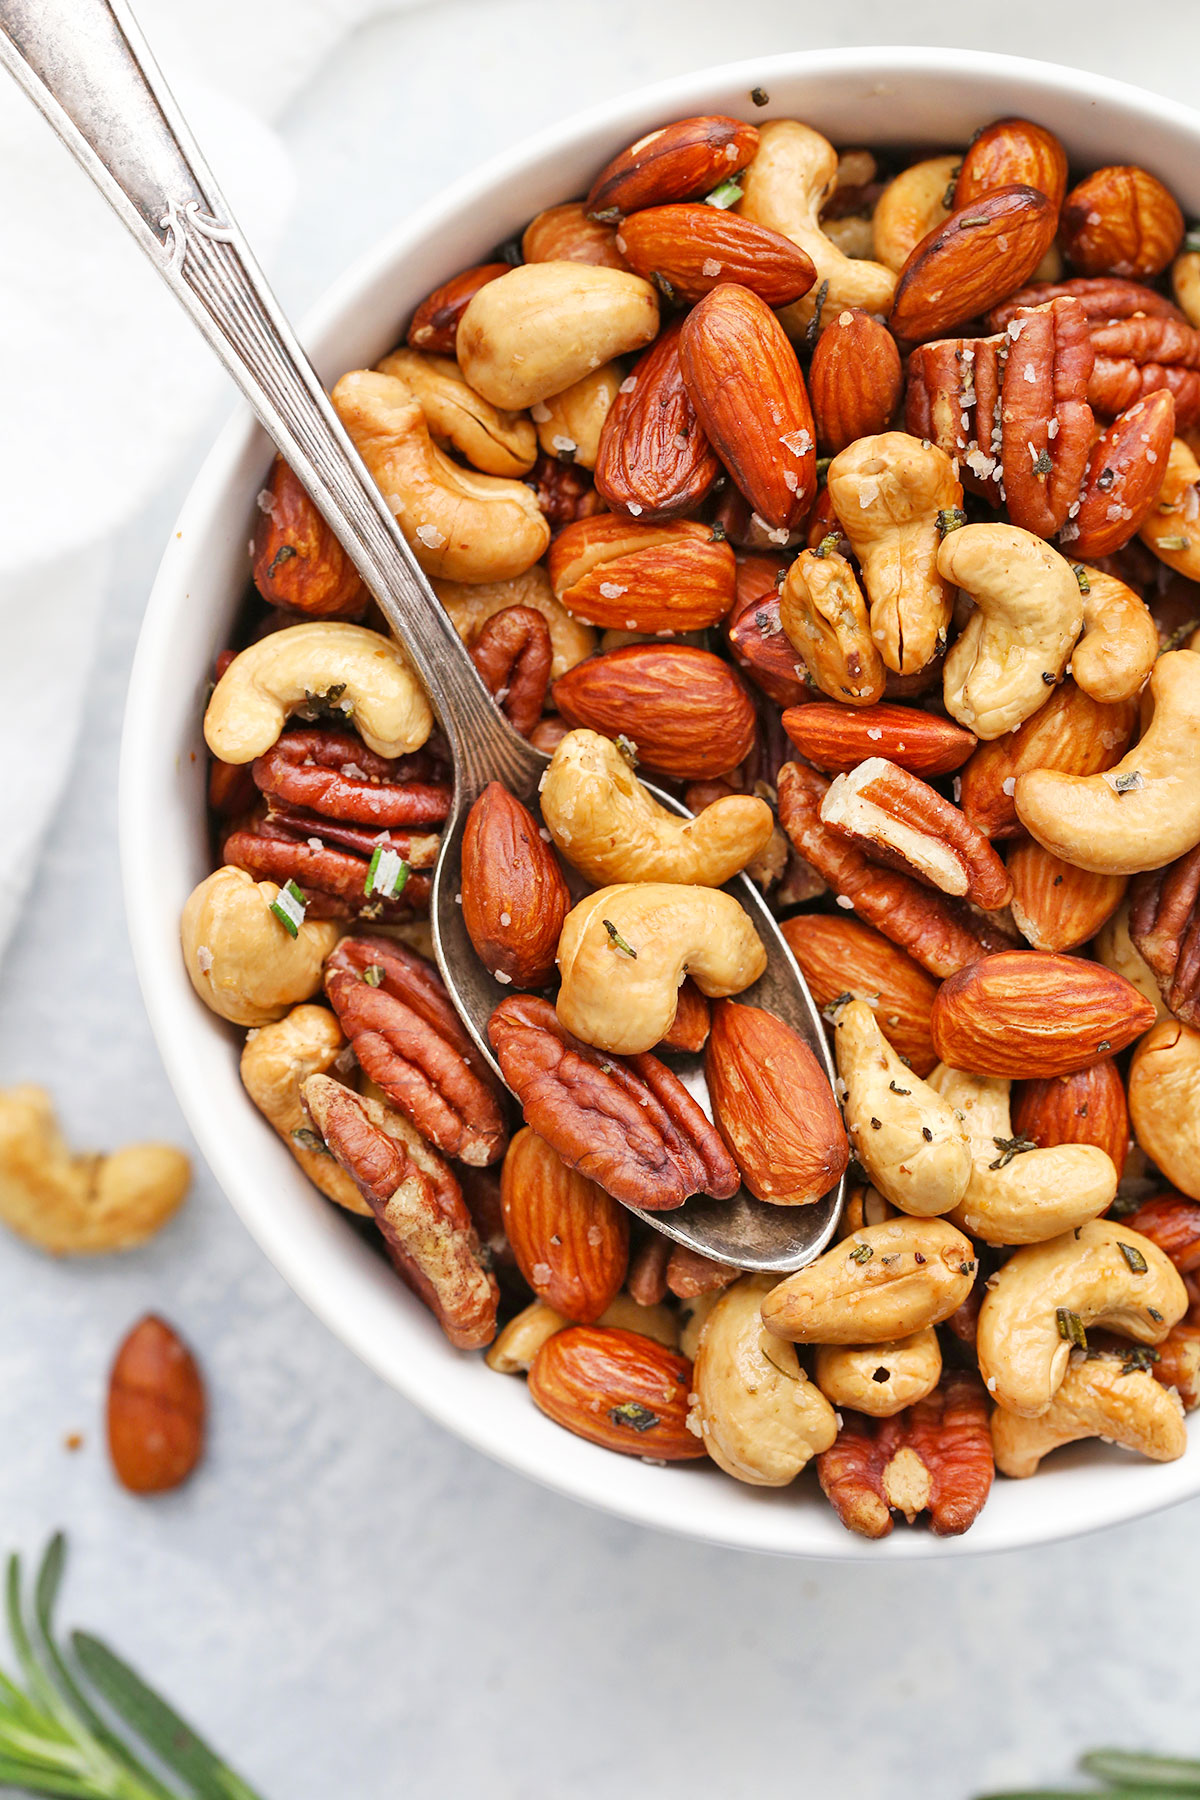 Close up overhead view of a bowl of Rosemary Sea Salt Mixed Nuts on a white background